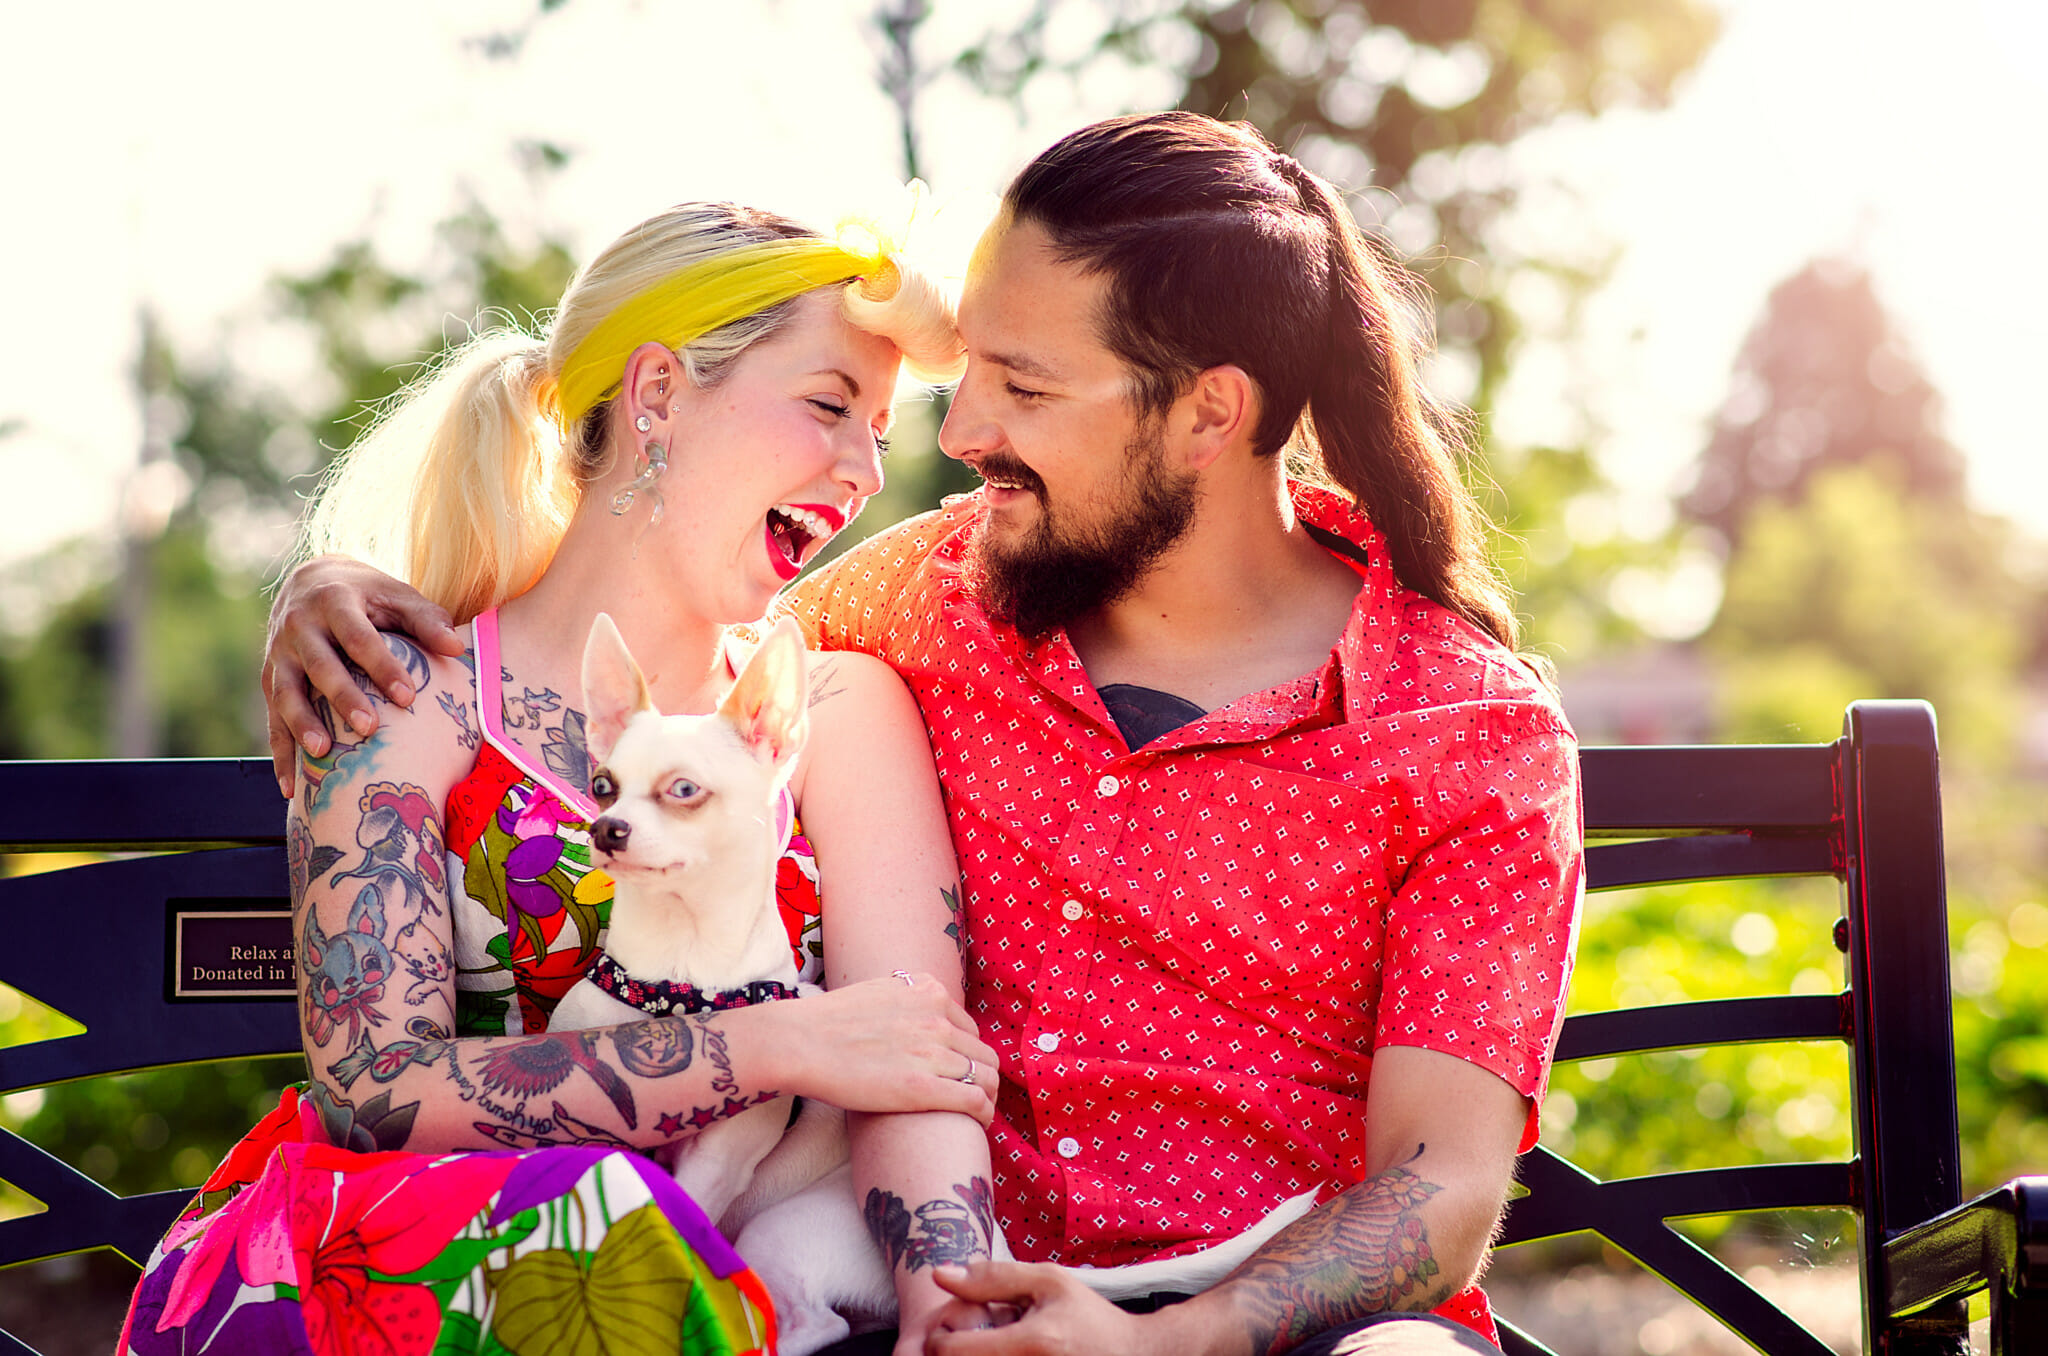 couple laugh on park bench during the summer